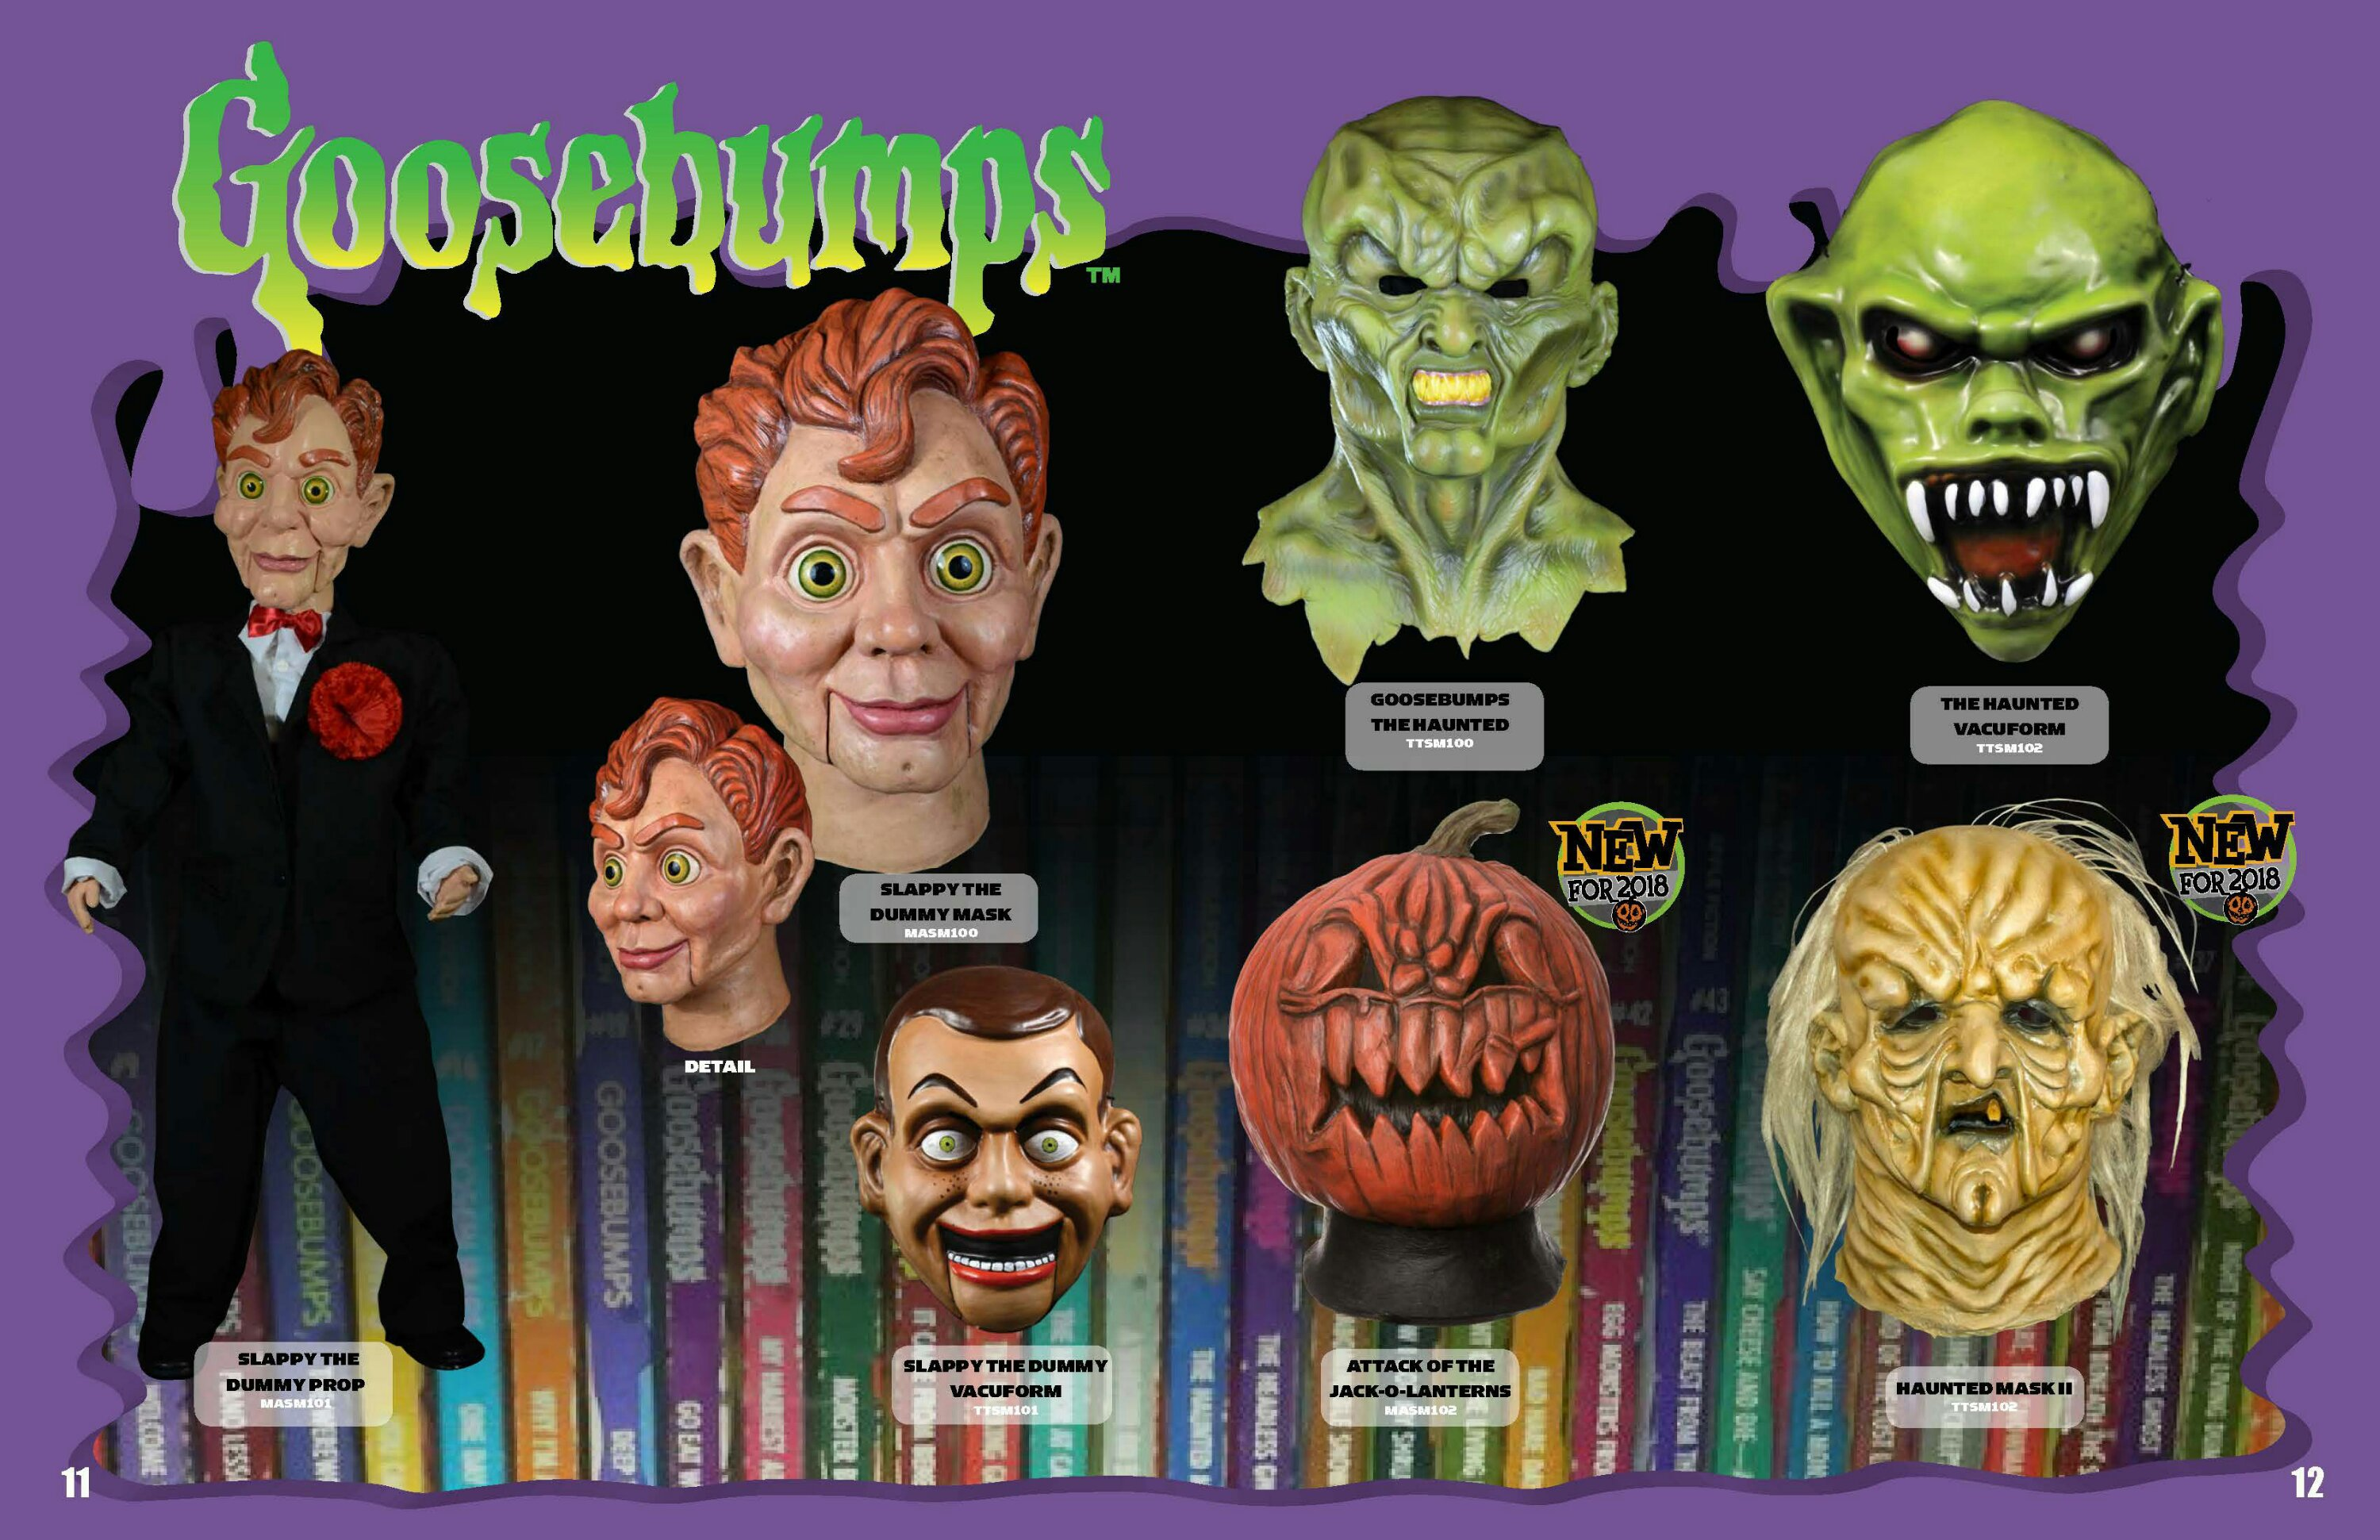 Goosebumps 2018 Catalog